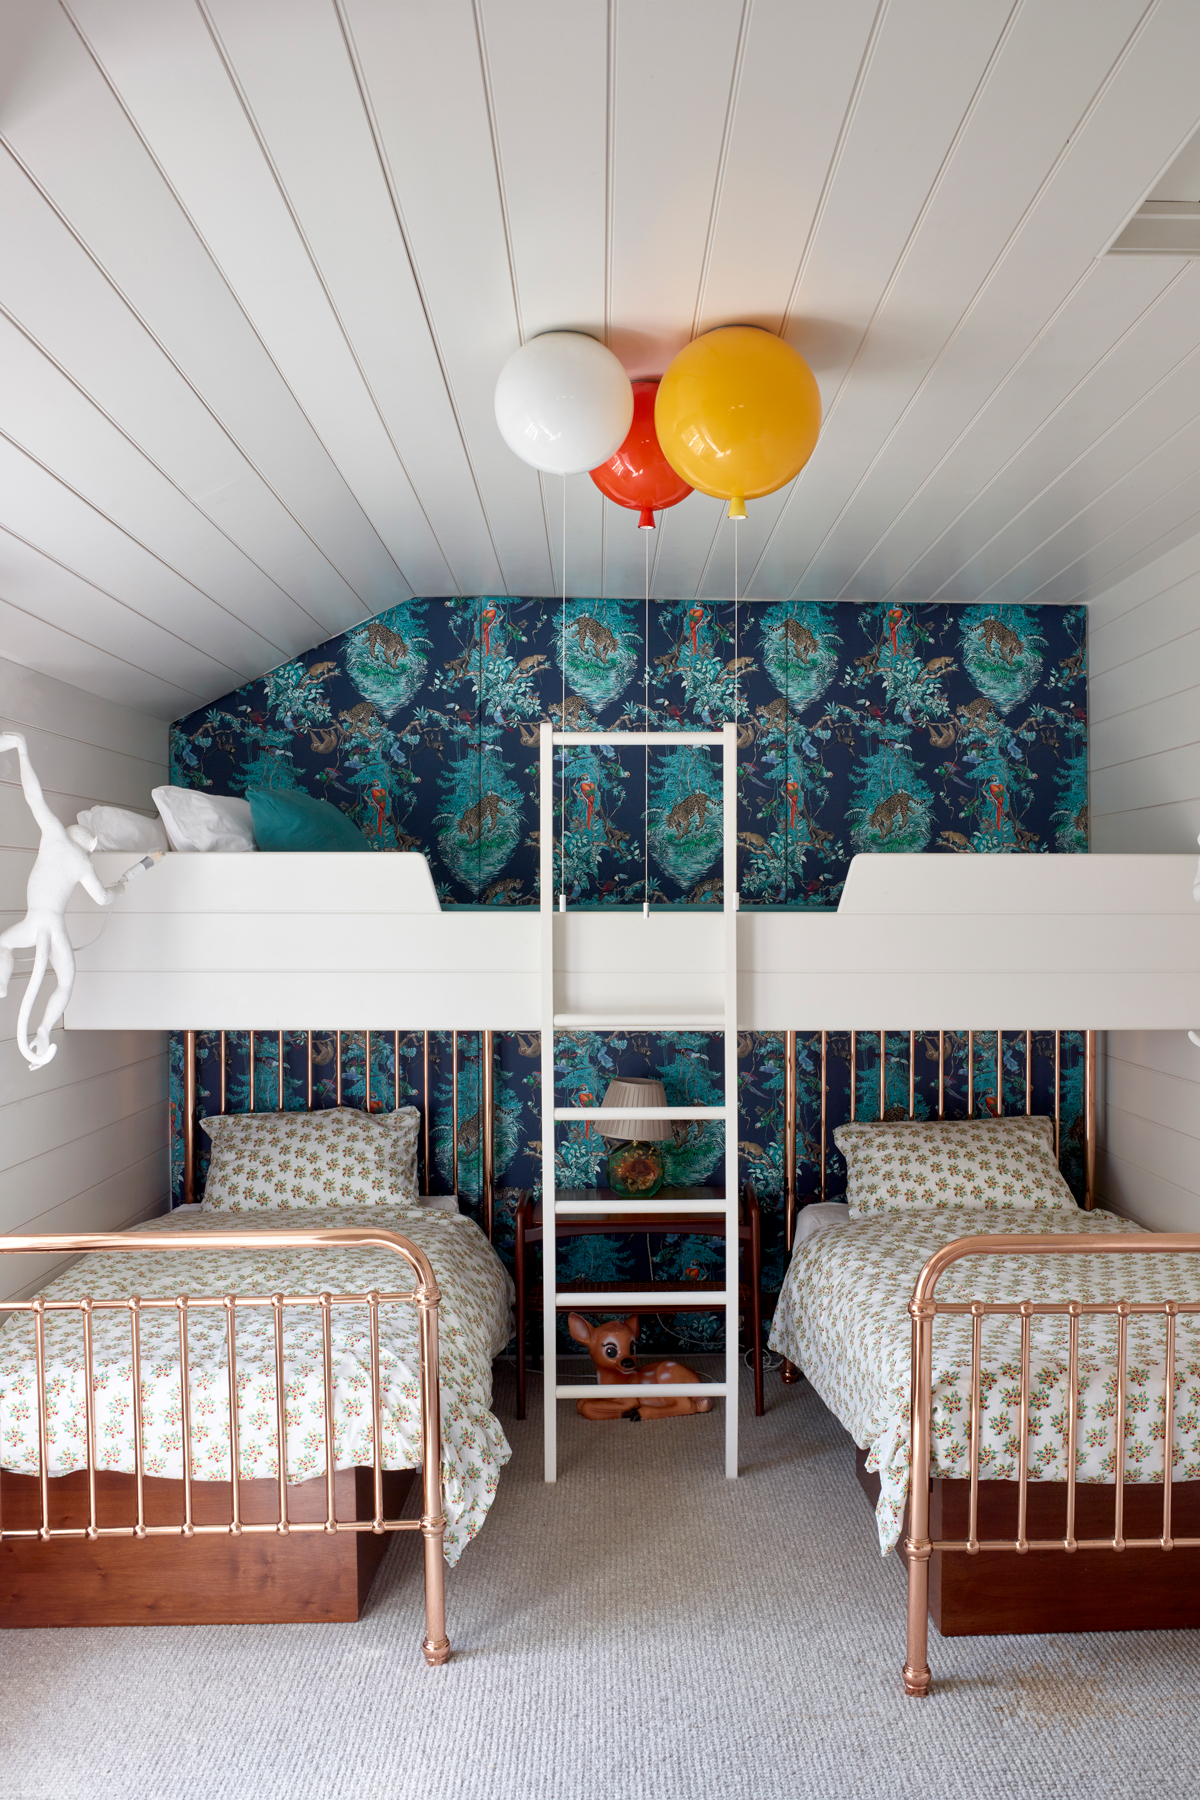 Twin Room, Bunk Bed and Sharing Kids Room Ideas For Kids That Share